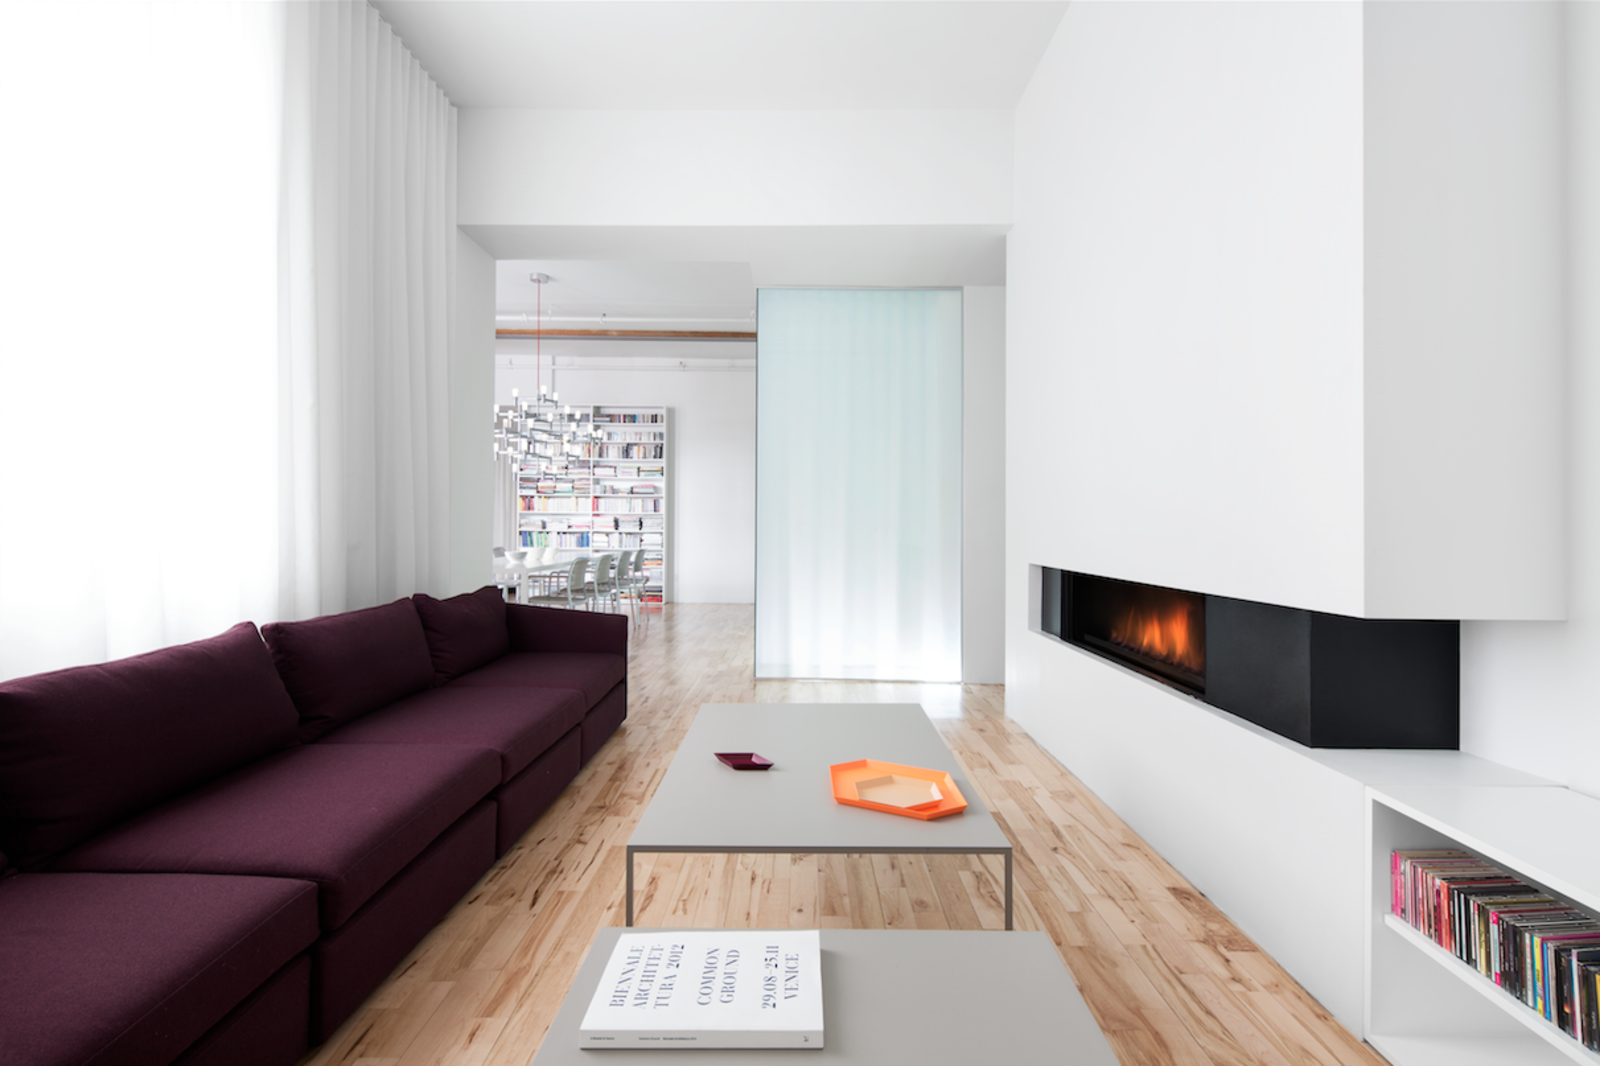 The minimal gas fireplace is from Ortal. Glass panels divide the living spaces, allowing natural light to carry through the space.  Luminous Modern Apartment in an Industrial Montreal Building by Allie Weiss